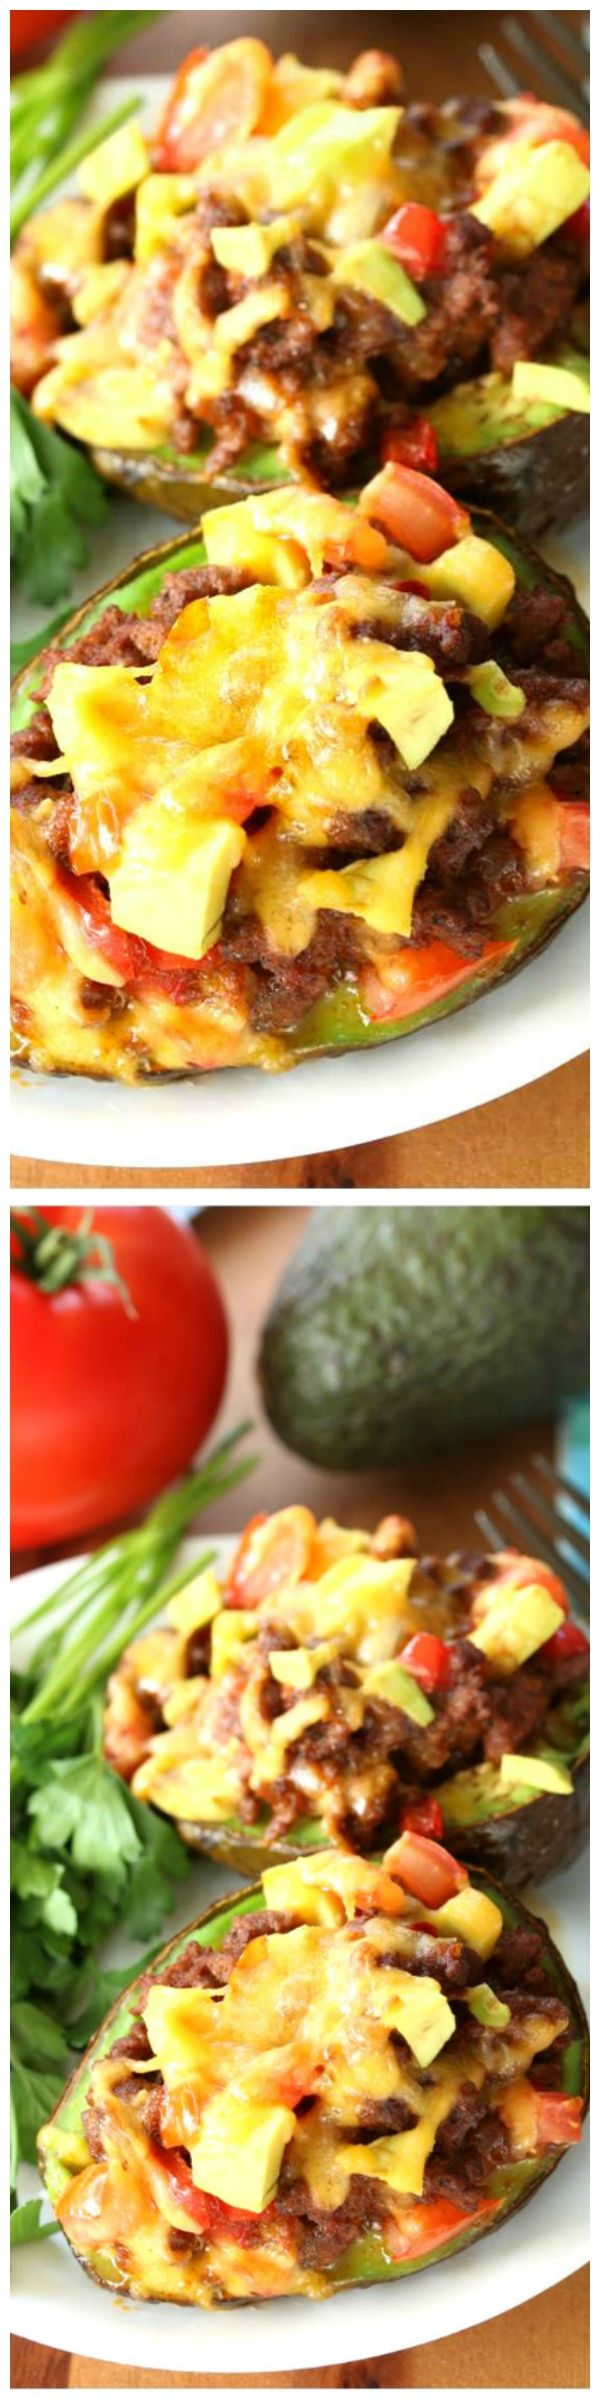 Avocado Stuffed Tacos - Fresh avocados stuffed with savory taco fillings. Easy to make, gluten free, and packed with protein! | @TheCozyCook on WholeYum.com